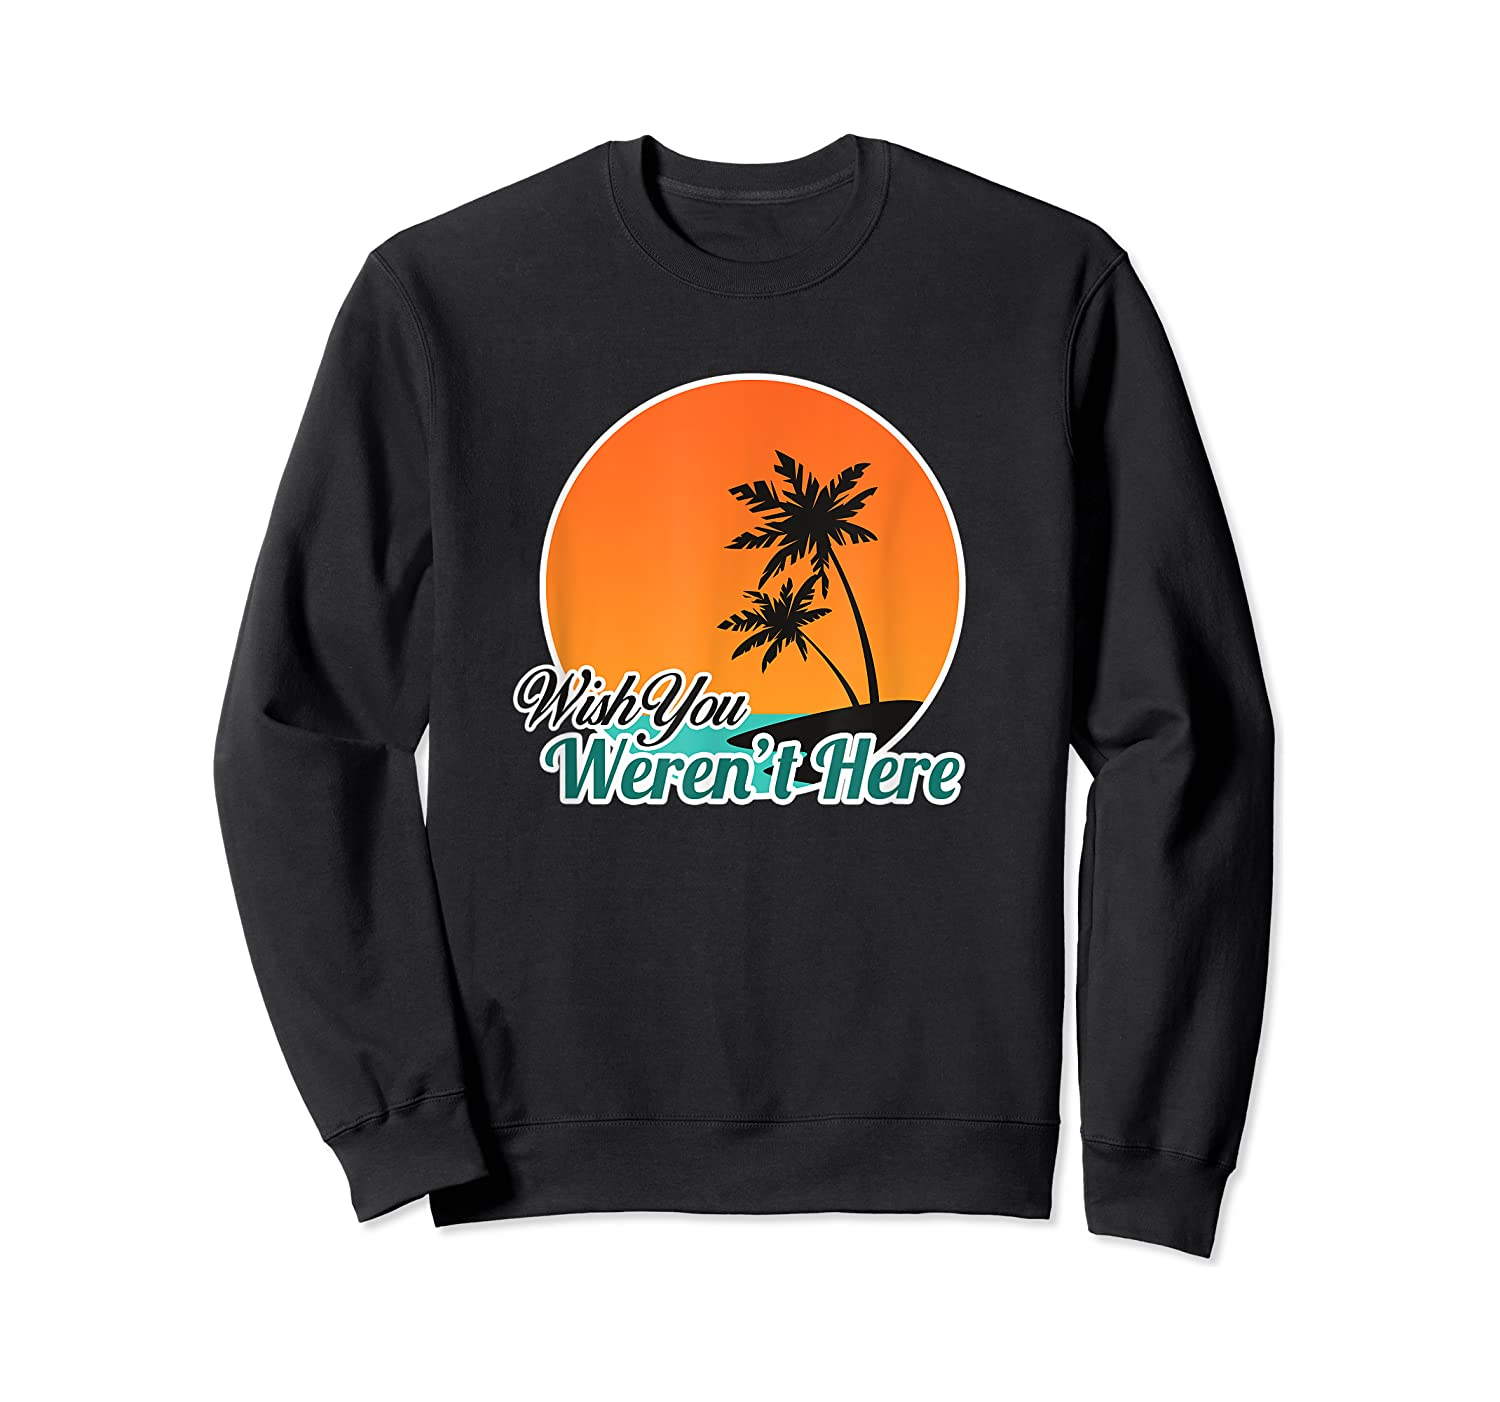 Wish You Weren't Here Funny Sarcastion Beach Shirts Crewneck Sweater